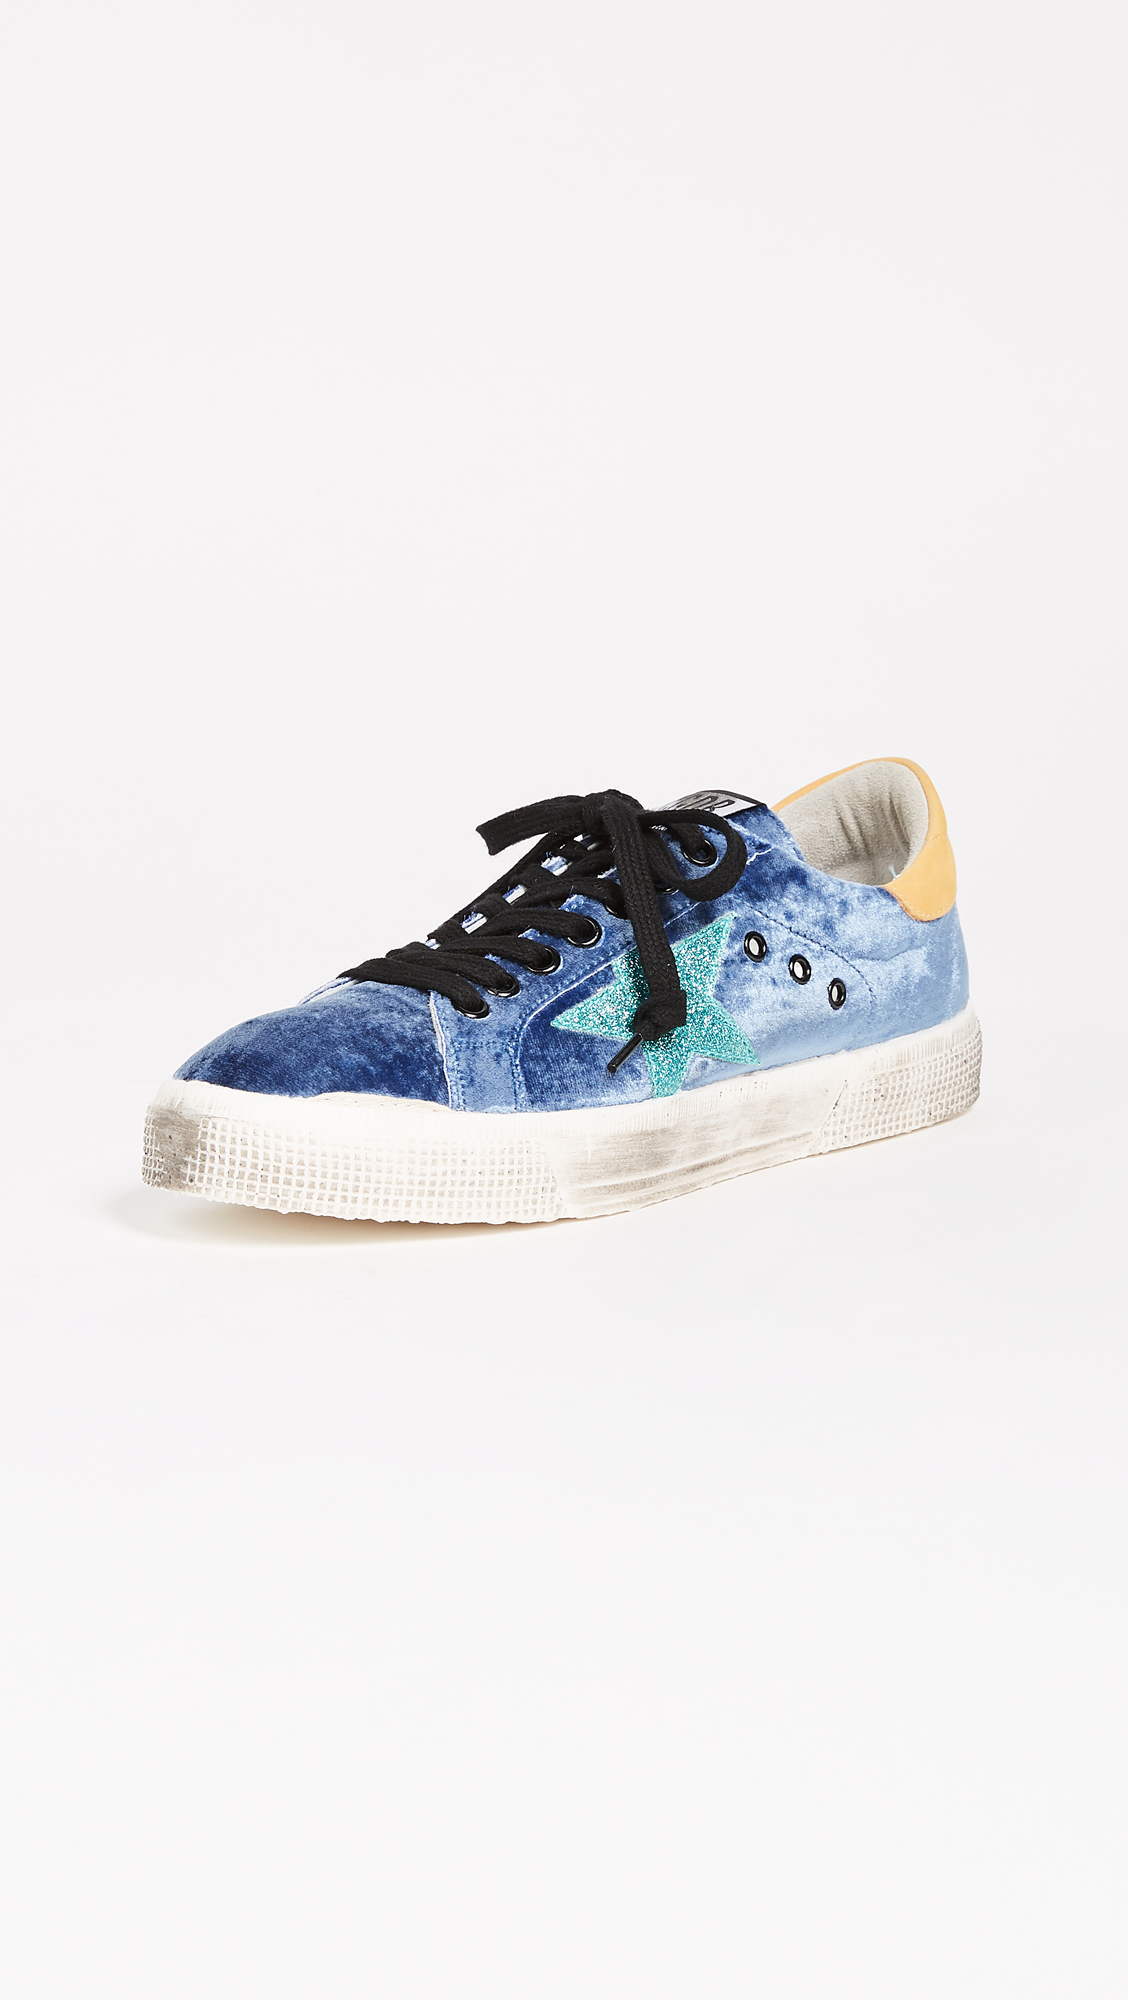 Golden Goose May Sneakers - Bluette/Aquamarine